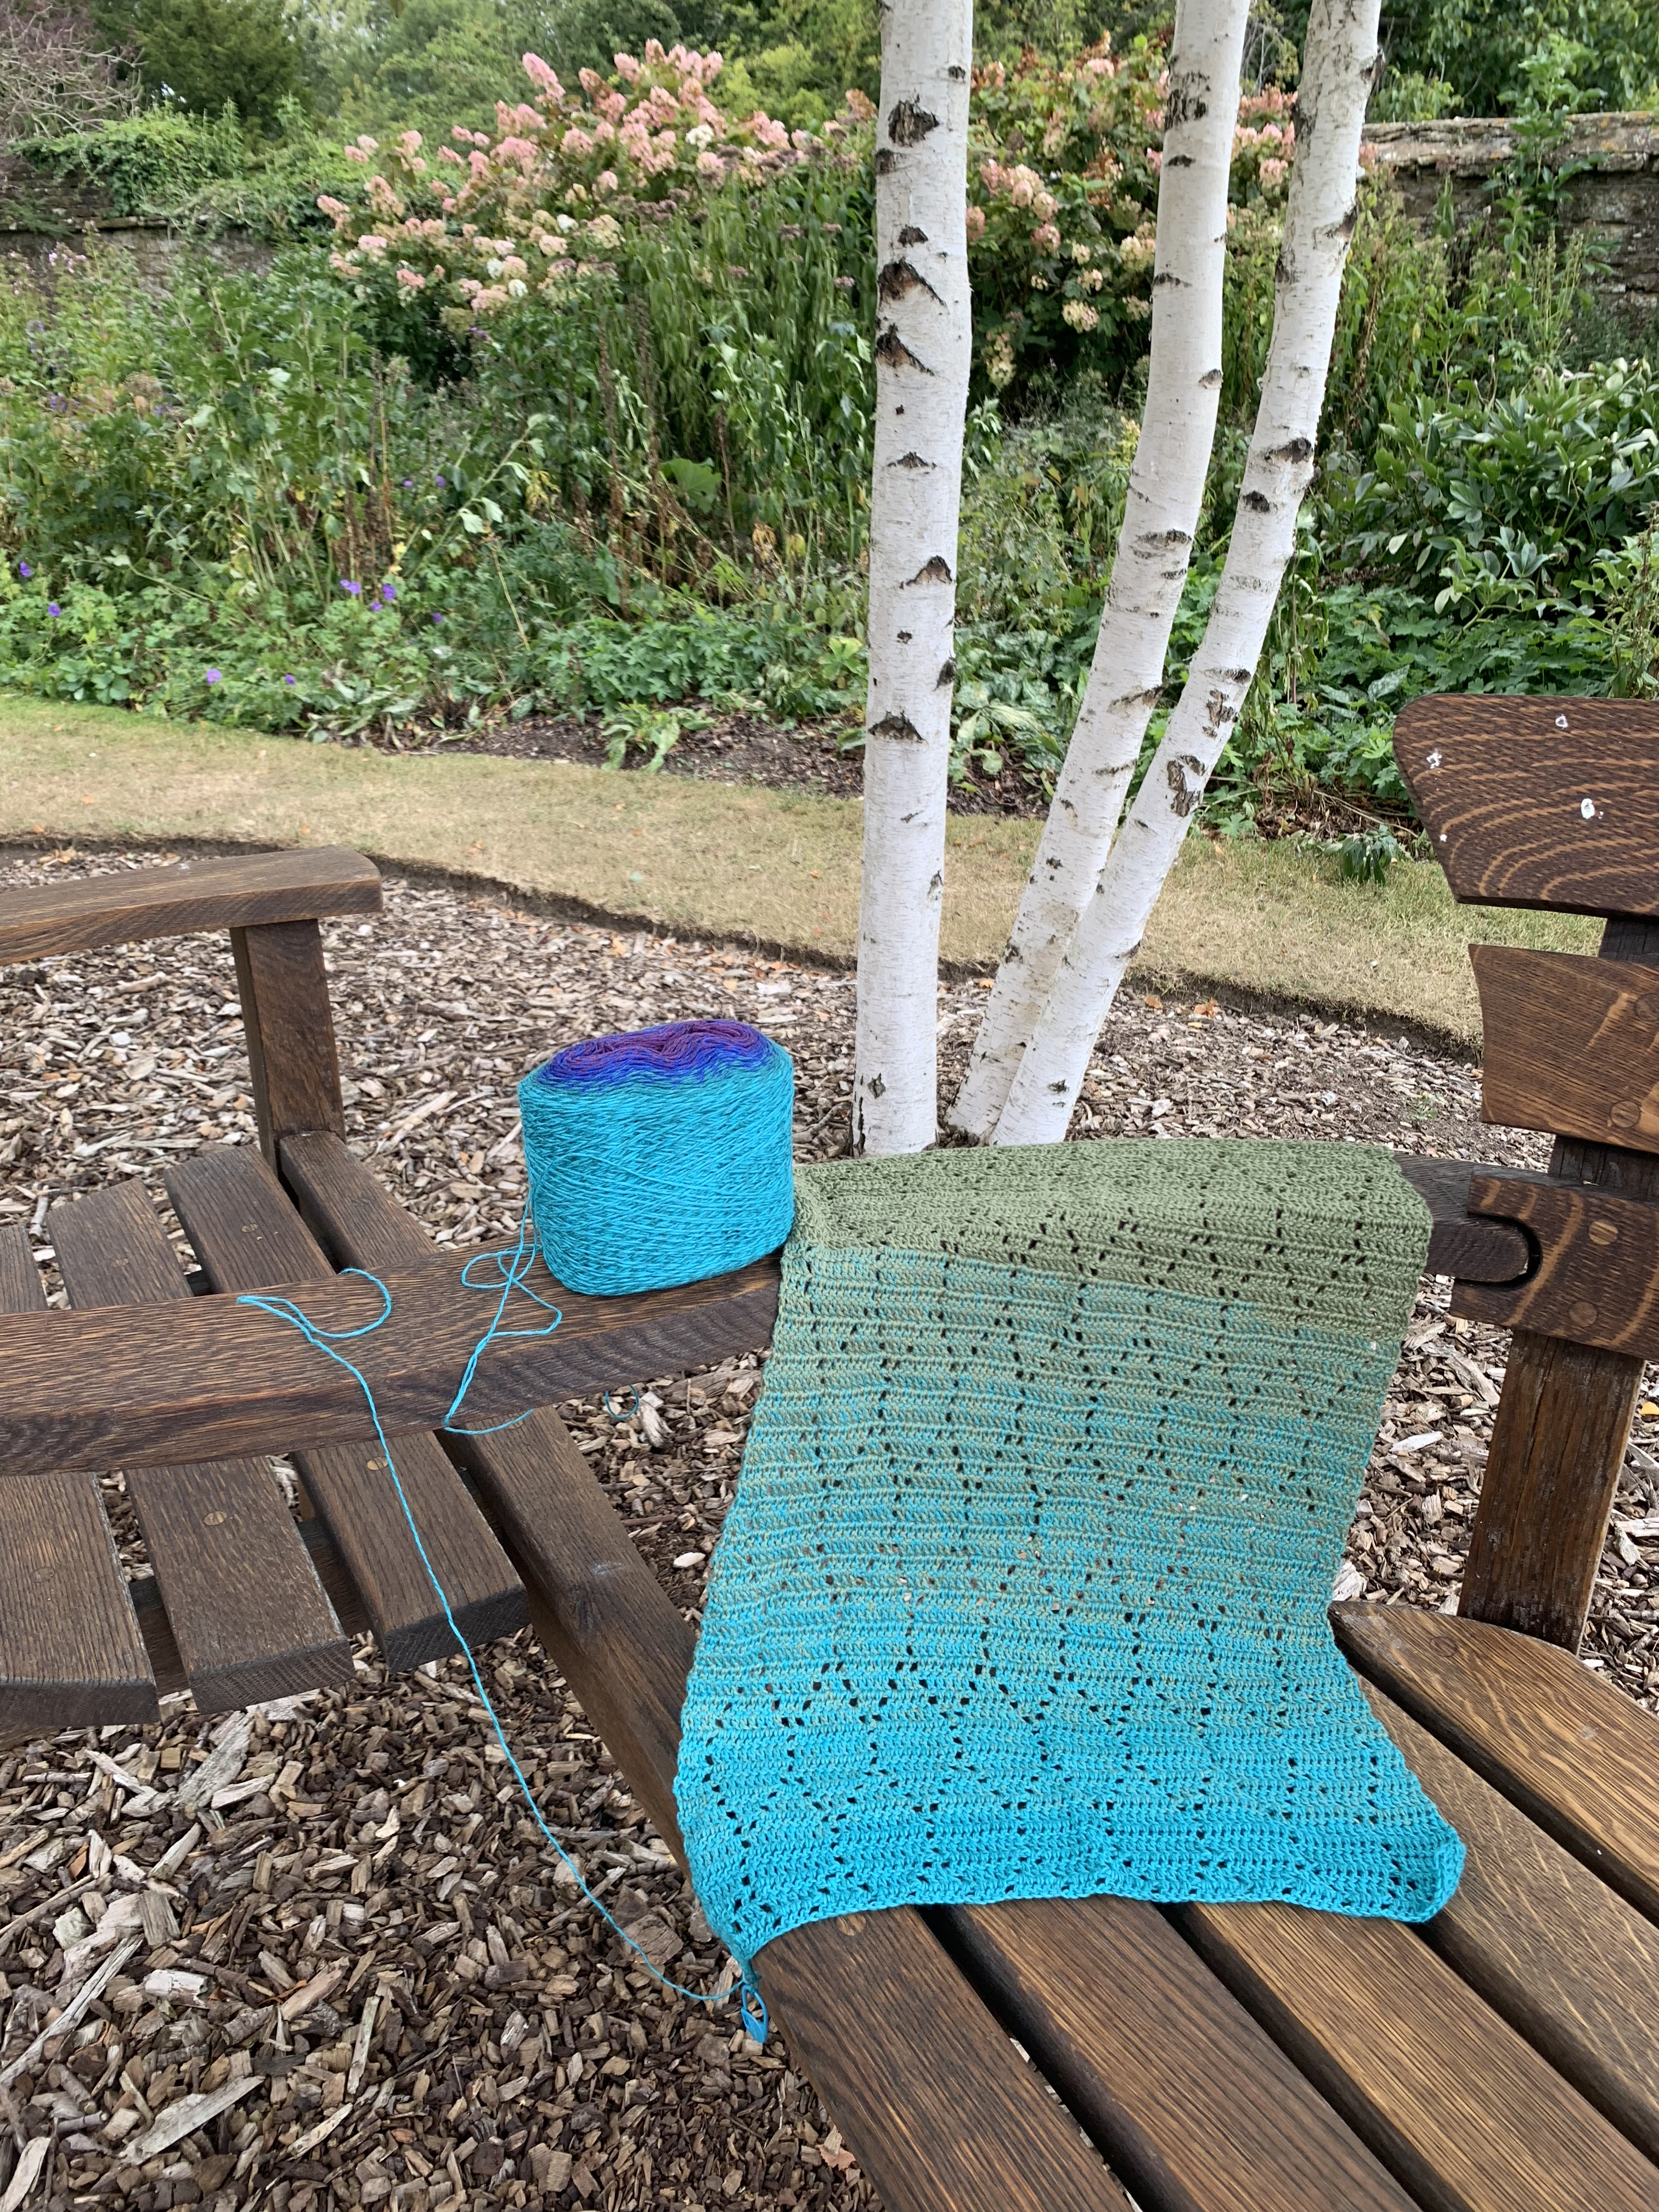 Scarf and yarn on the arm of a bench with a the trunk of a birch tree and flowers in the background.